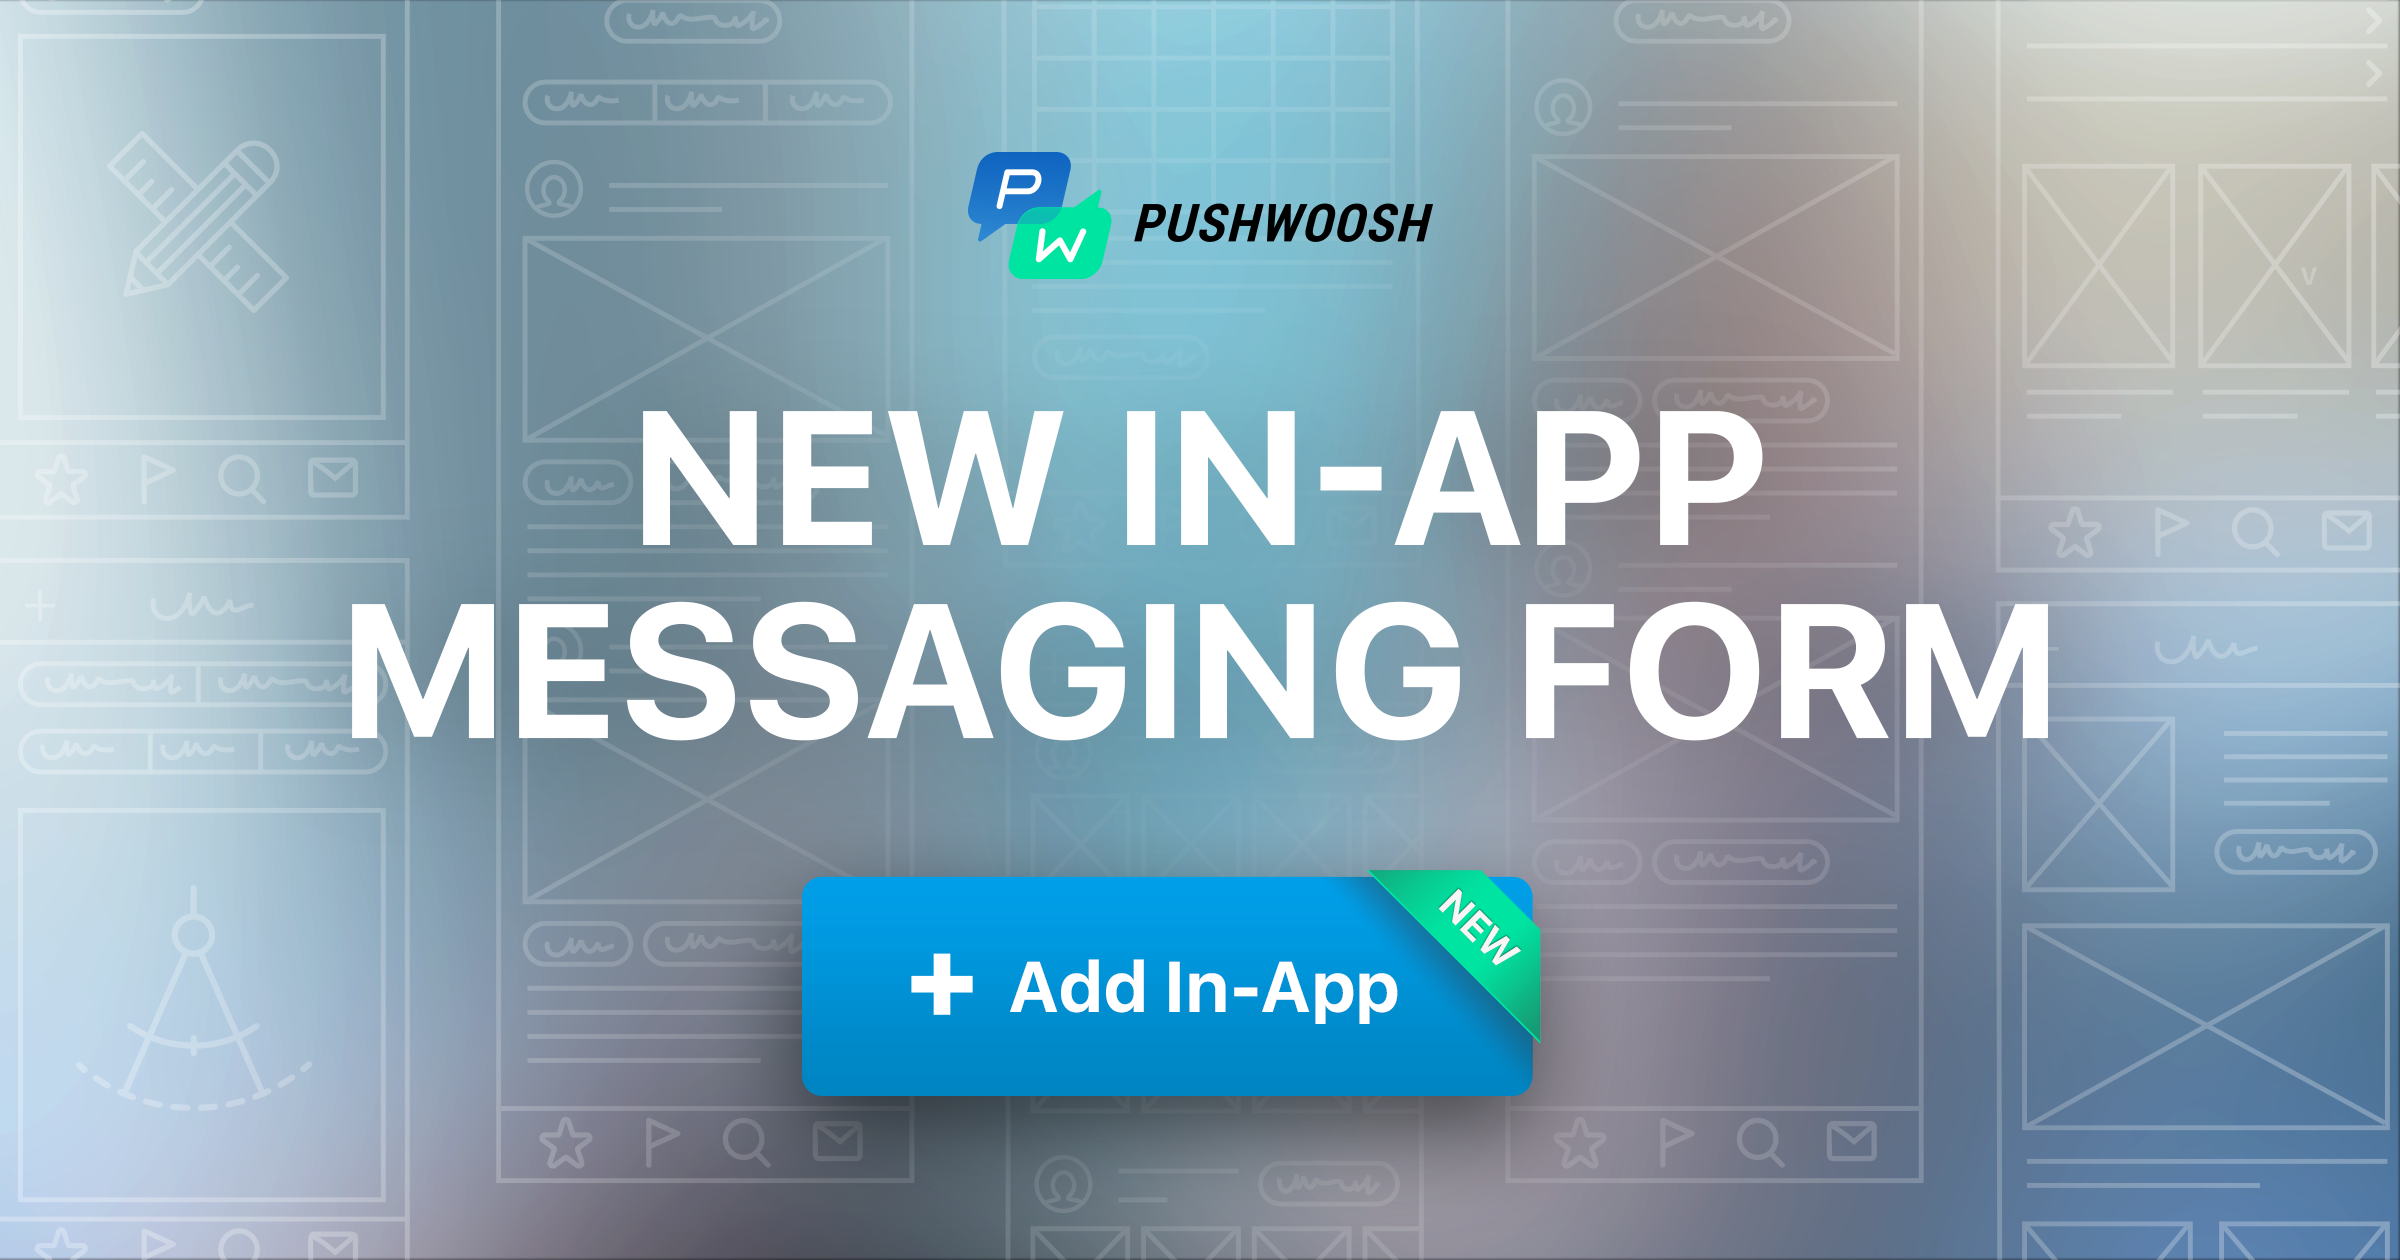 In-App Messaging Improved